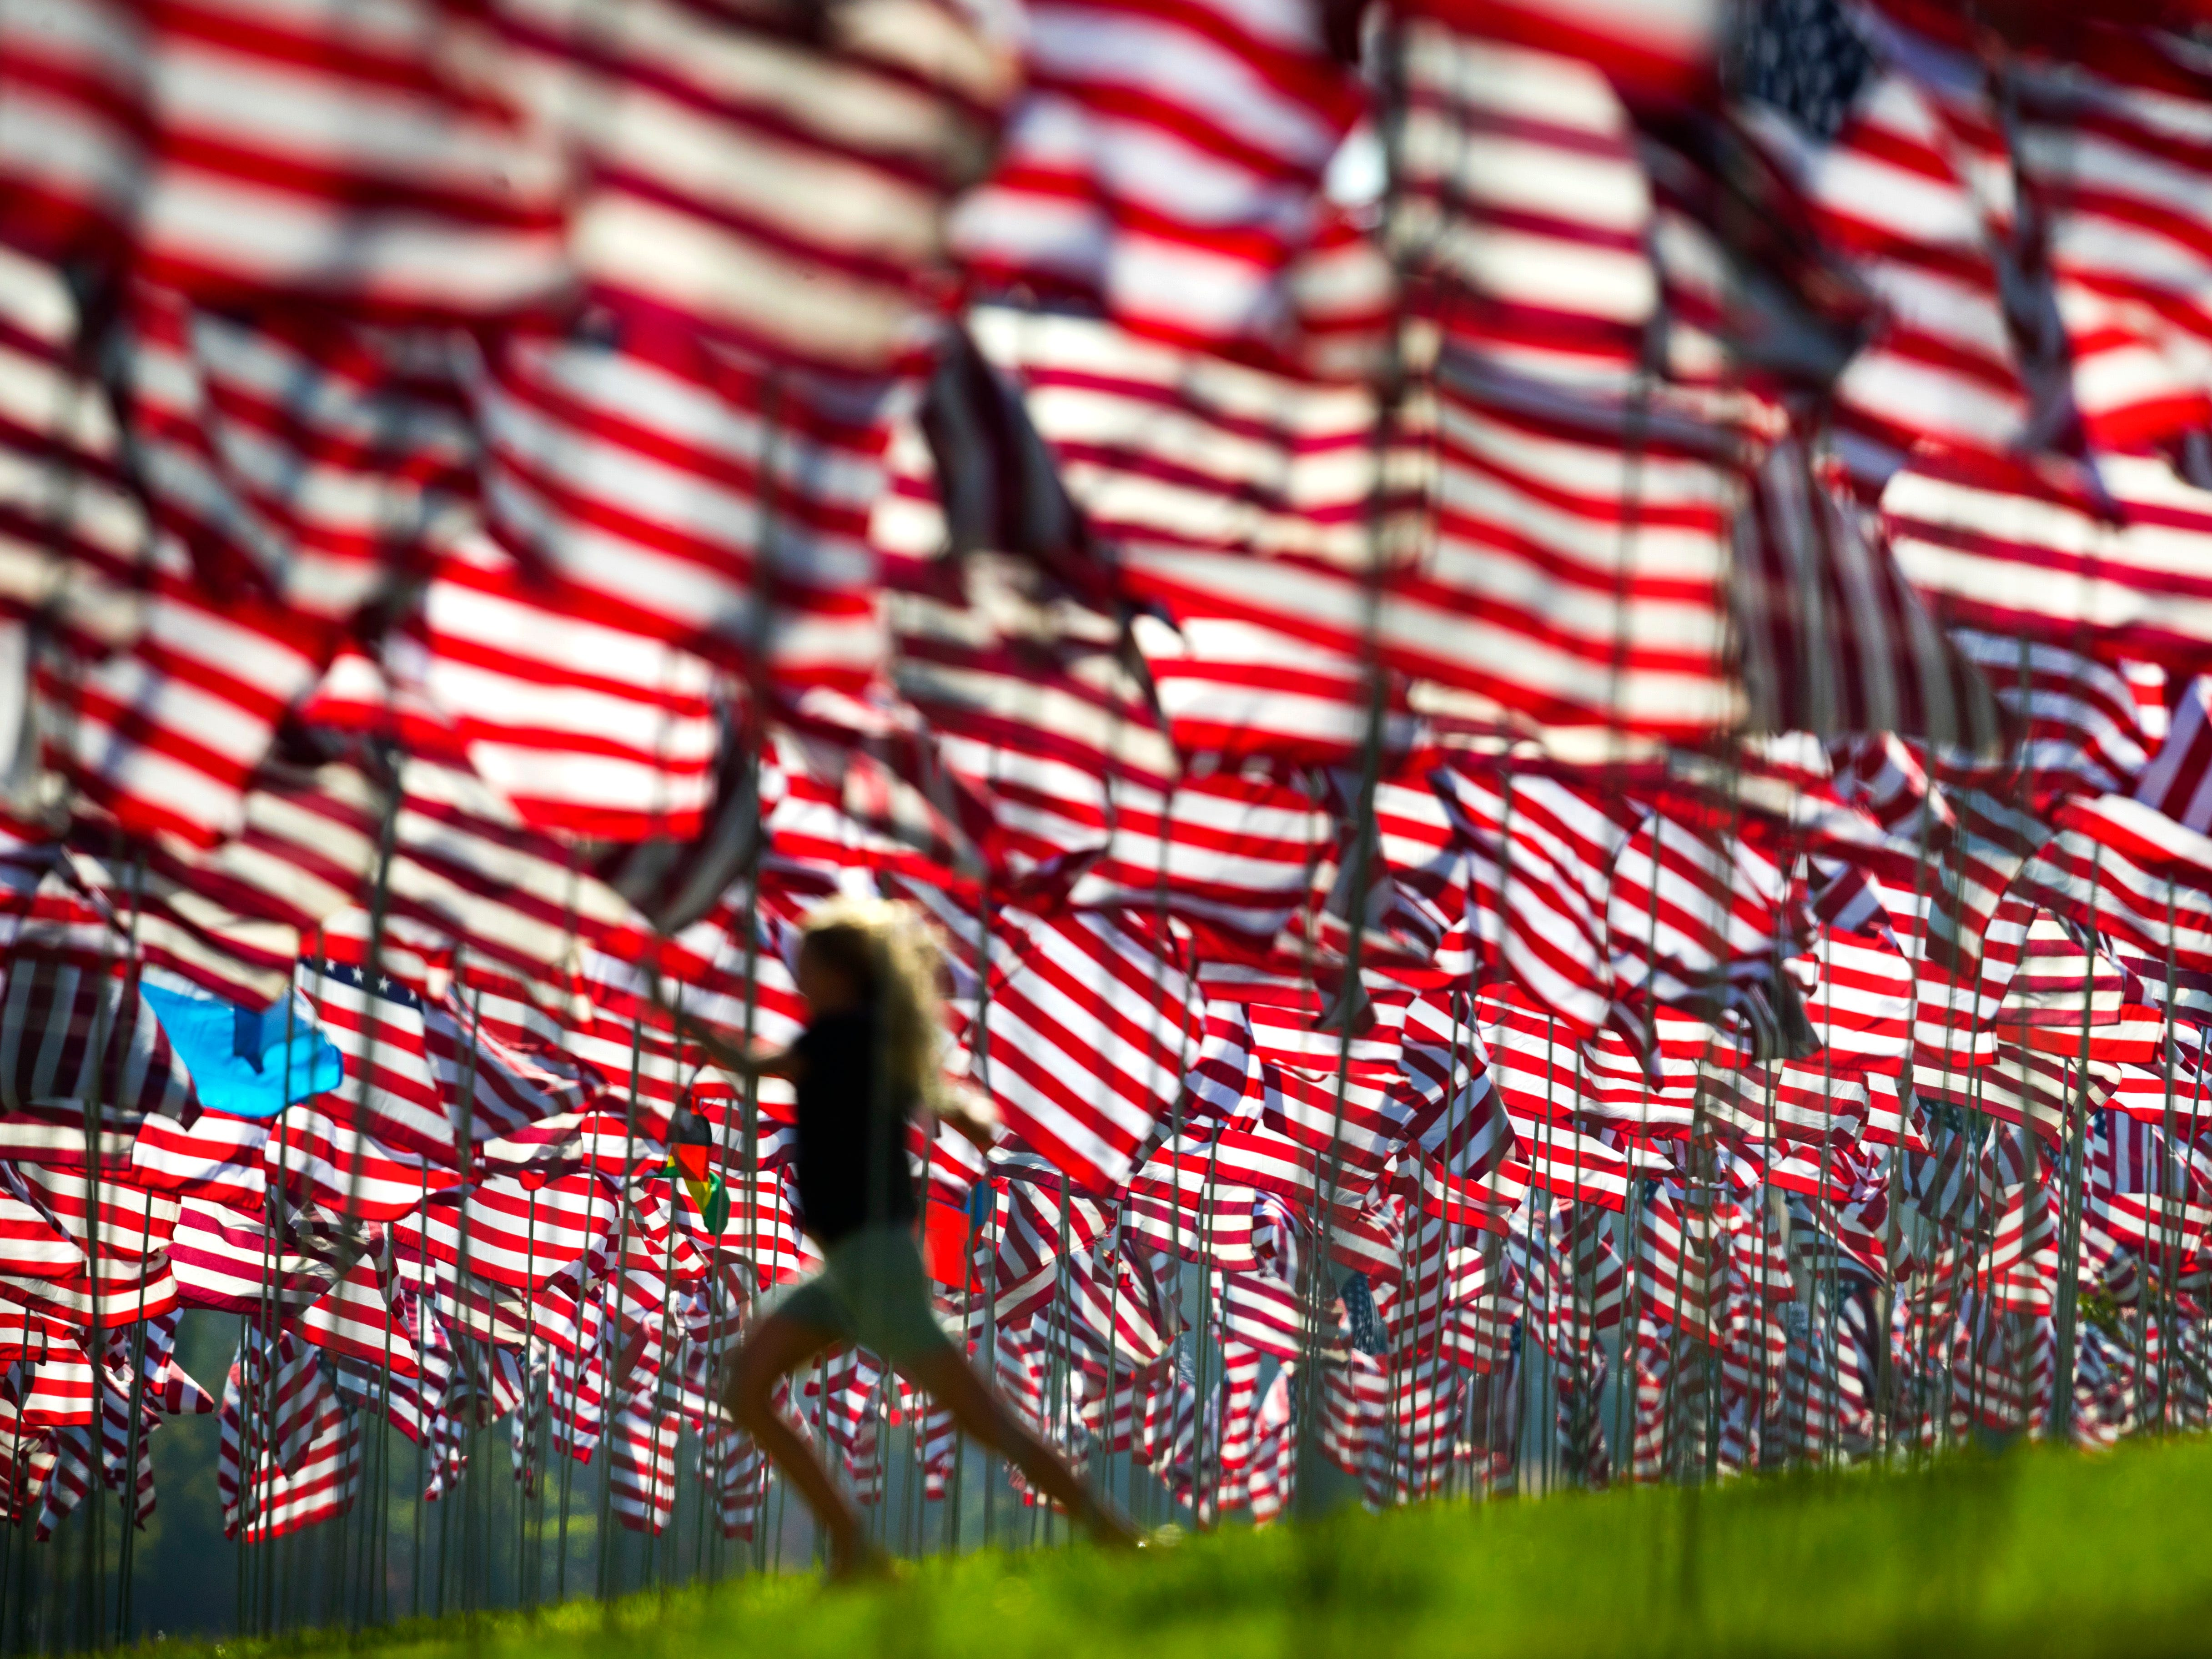 Callie Cirulnick, 10, visits the Pepperdine University's annual display of flags honoring the victims of the 9/11 terrorist attacks, Monday, Sept. 10, 2018, in Malibu, Calif. Terrorists used hijacked planes to crash Sept. 11, 2001, into the World Trade Centers, the Pentagon and a field in Pennsylvania. Nearly 3,000 people were killed in the attacks. (AP Photo/Jae C. Hong) ORG XMIT: CAJH102